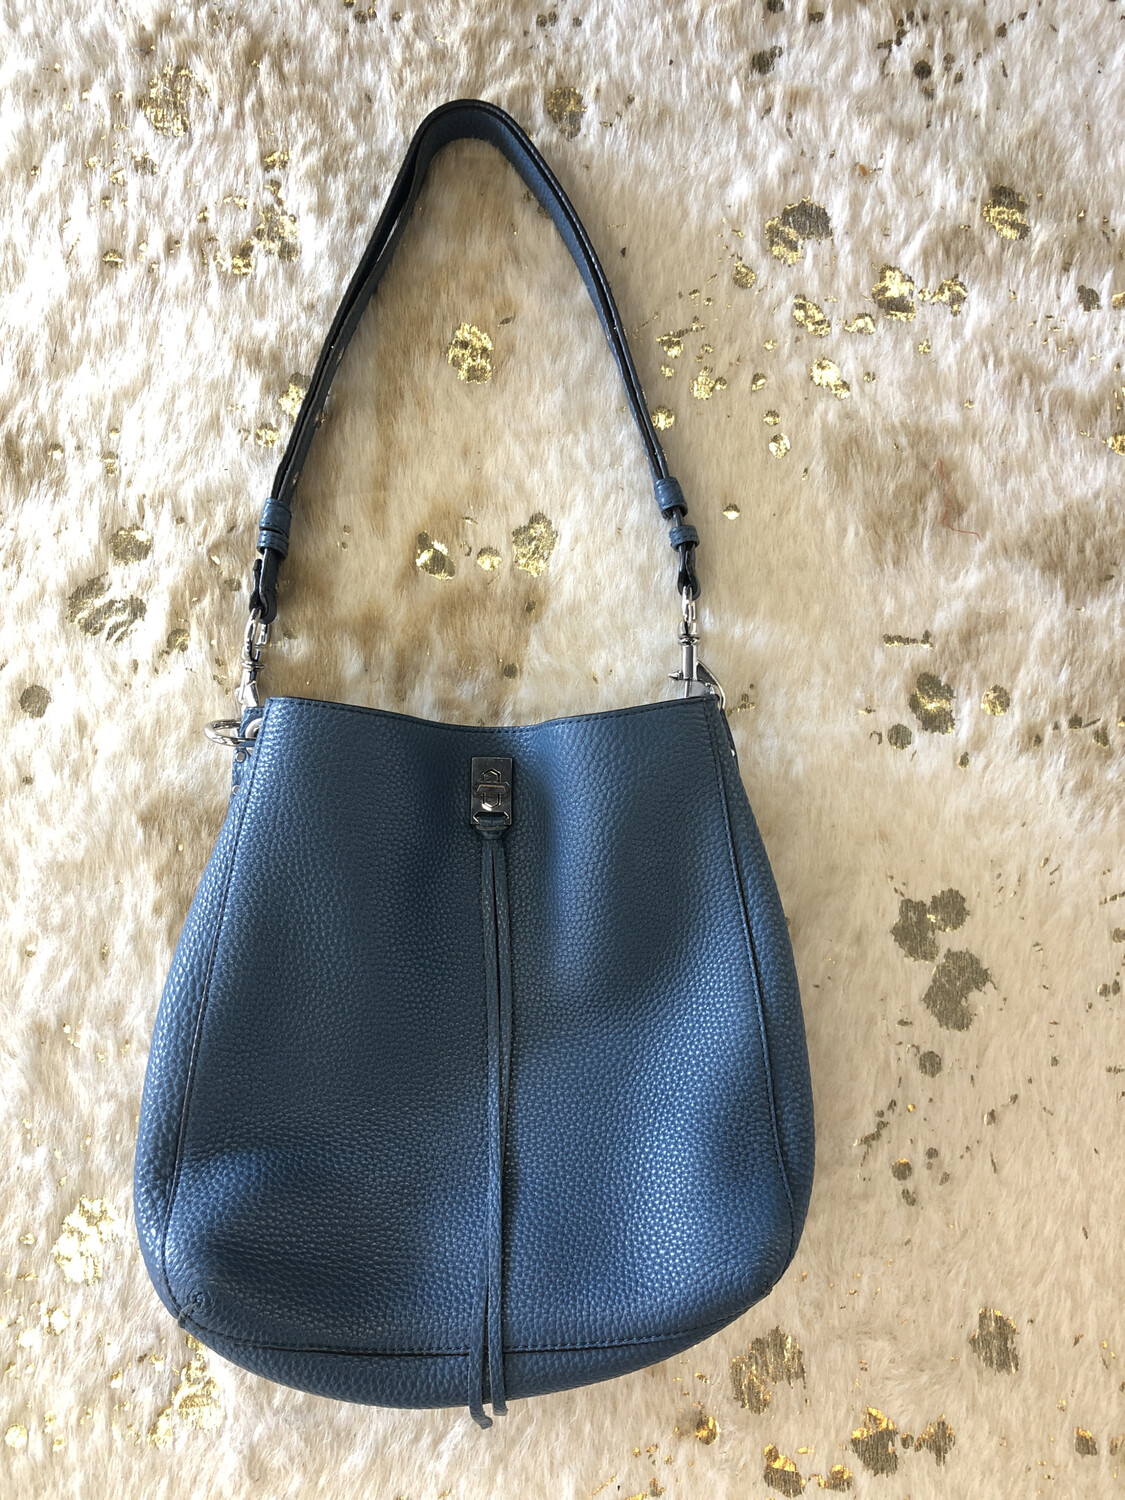 Rebecca Minkoff Blue Studded Shoulder Bag